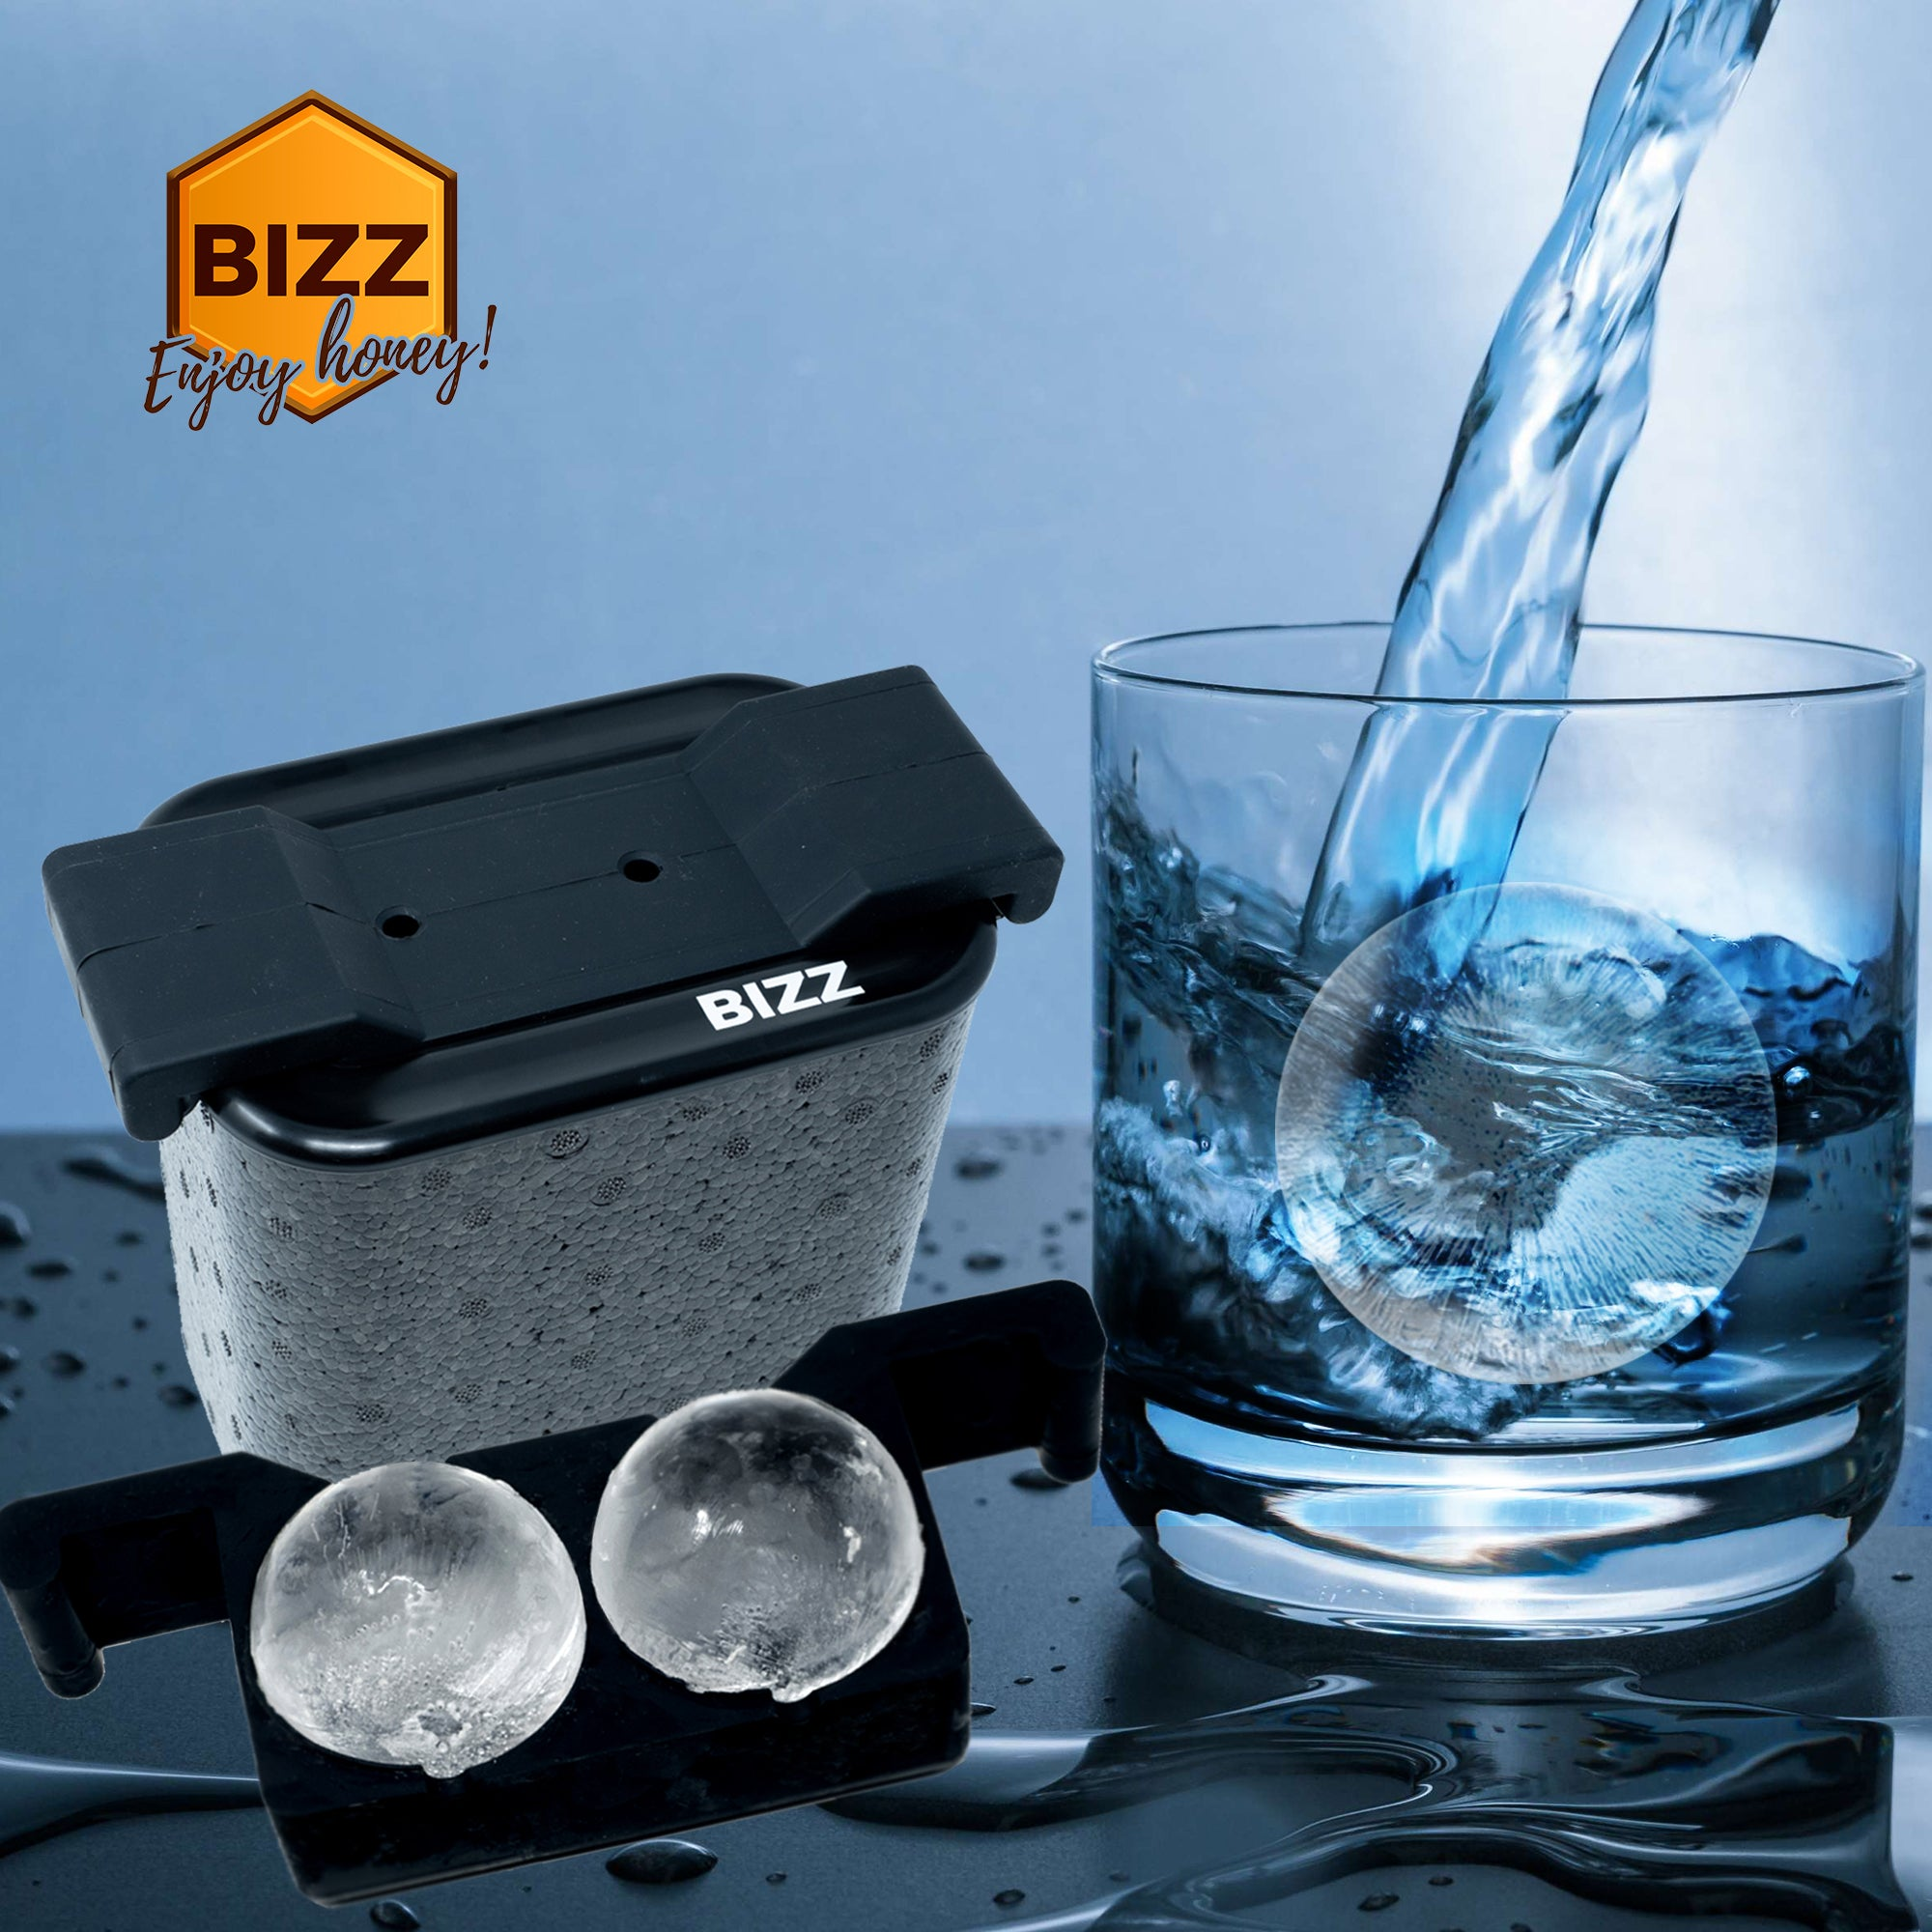 Bizz Crystal Clear Ice Maker | Plastic Silicone Ice Molds, Rigid, BPA Free,  Reusable | Creates Clear, Easy to Freeze and Remove Ice | 2-Cavity System